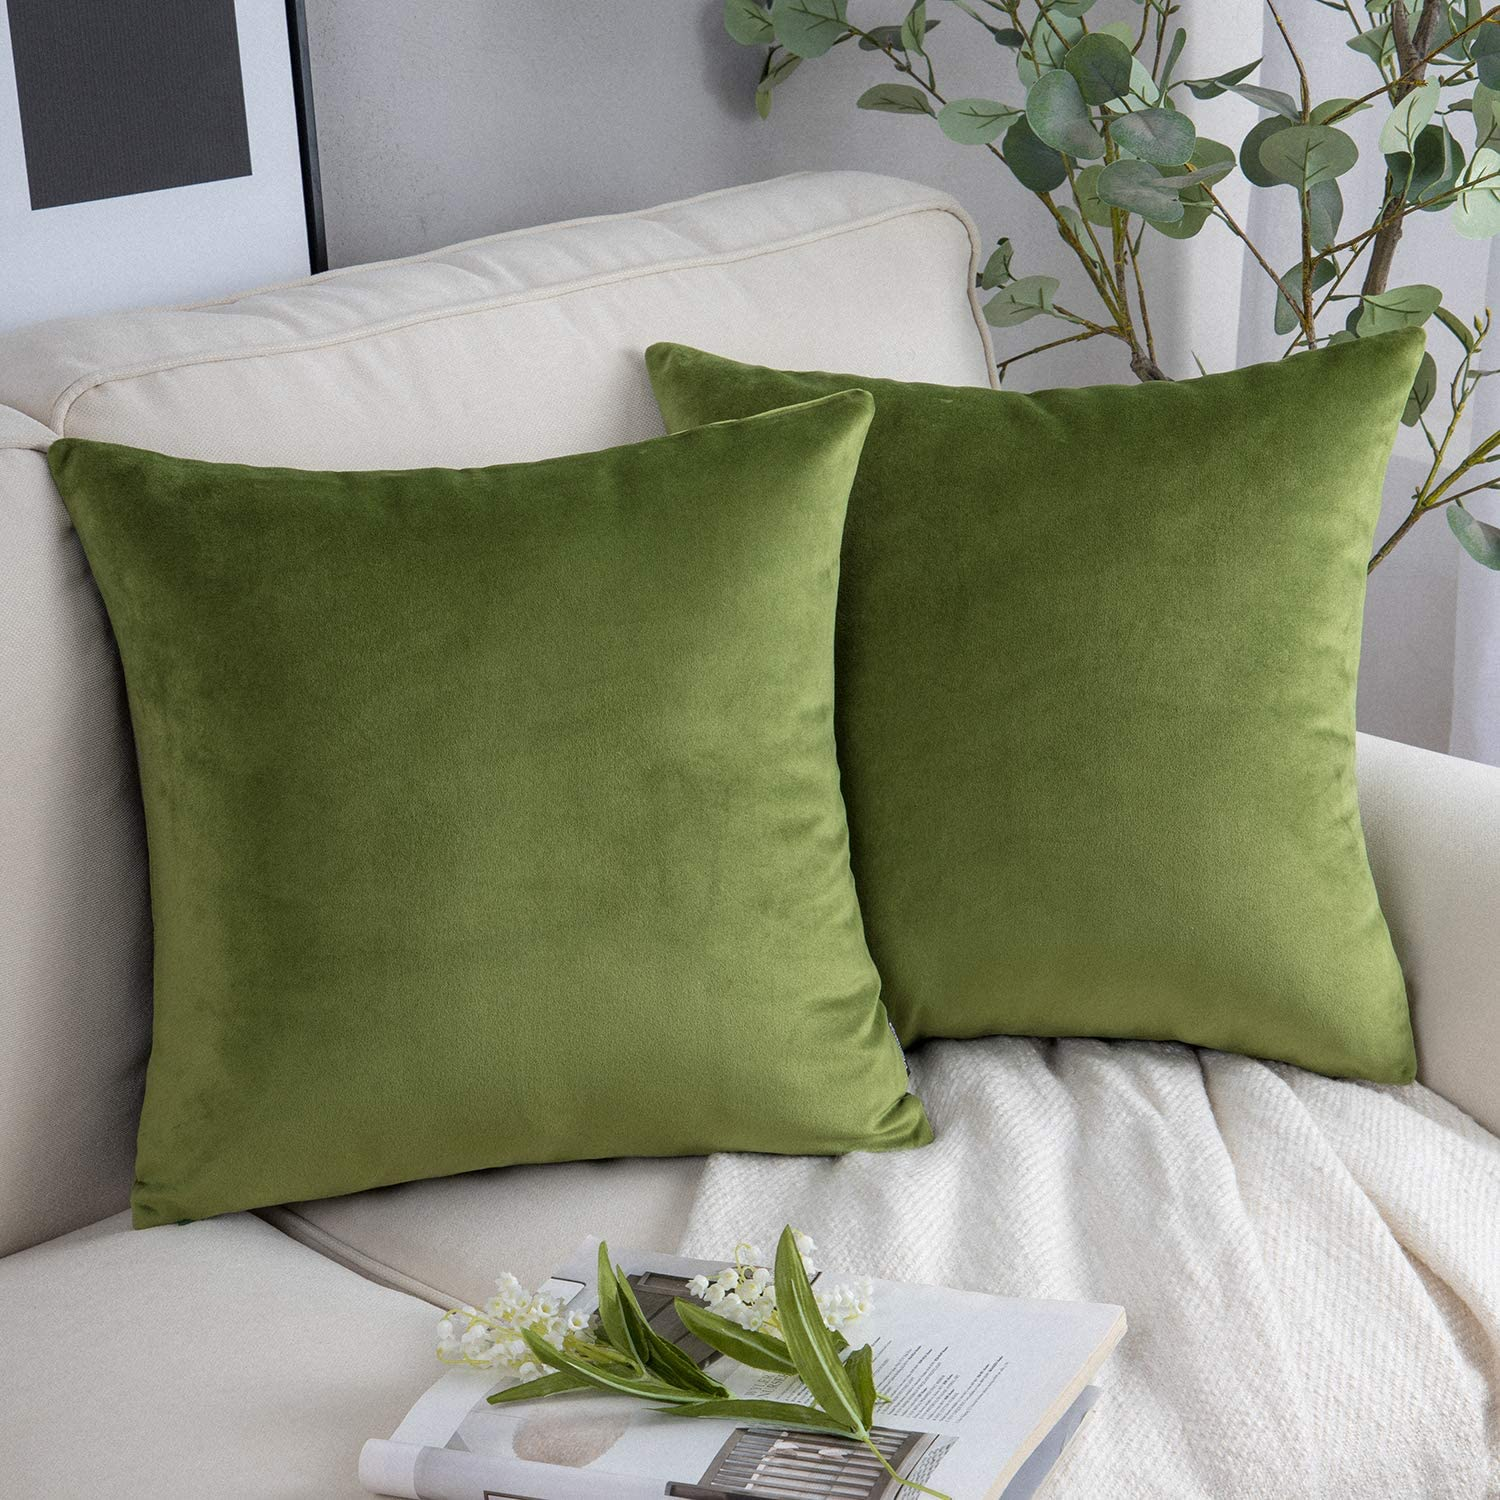 Phantoscope Pack of 2 Velvet Decorative Throw Pillow Covers Soft Solid Square Cushion Case for Couch Green 18 x 18 inches 45 x 45 cm